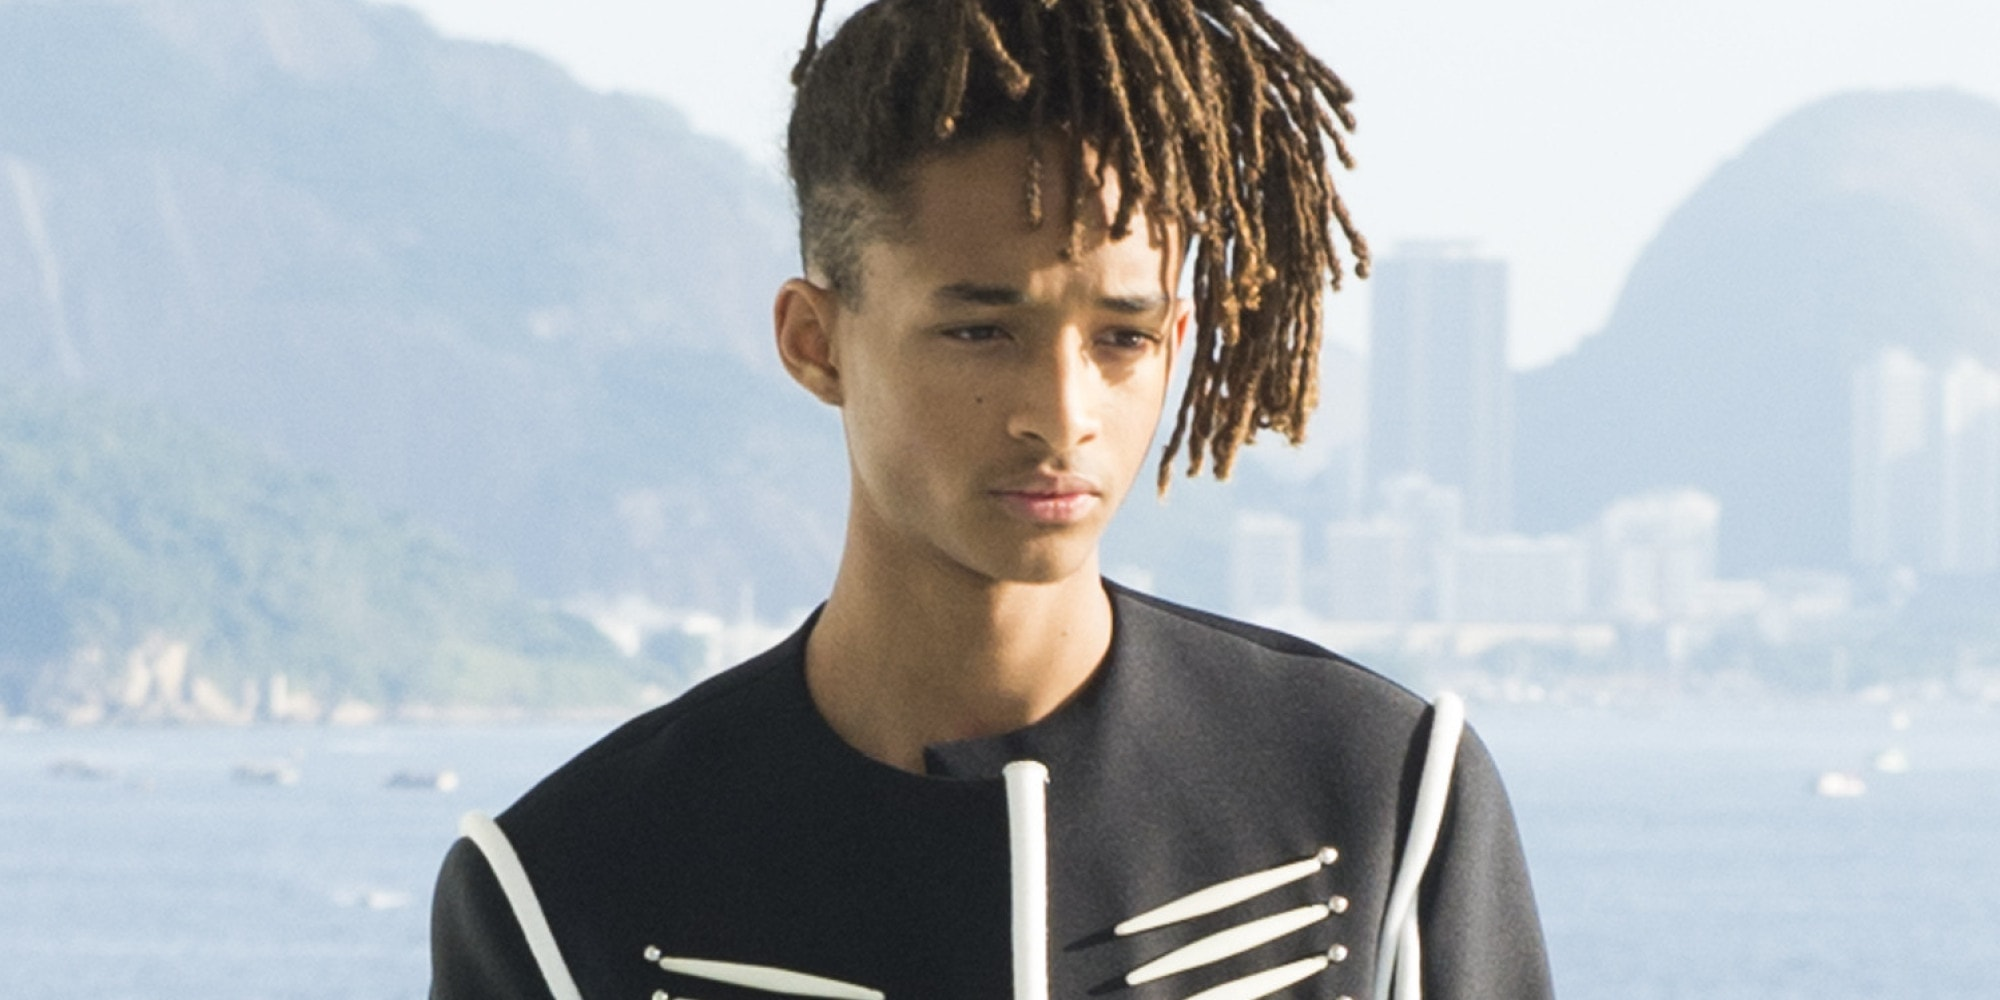 Jaden Smith Widescreen for desktop